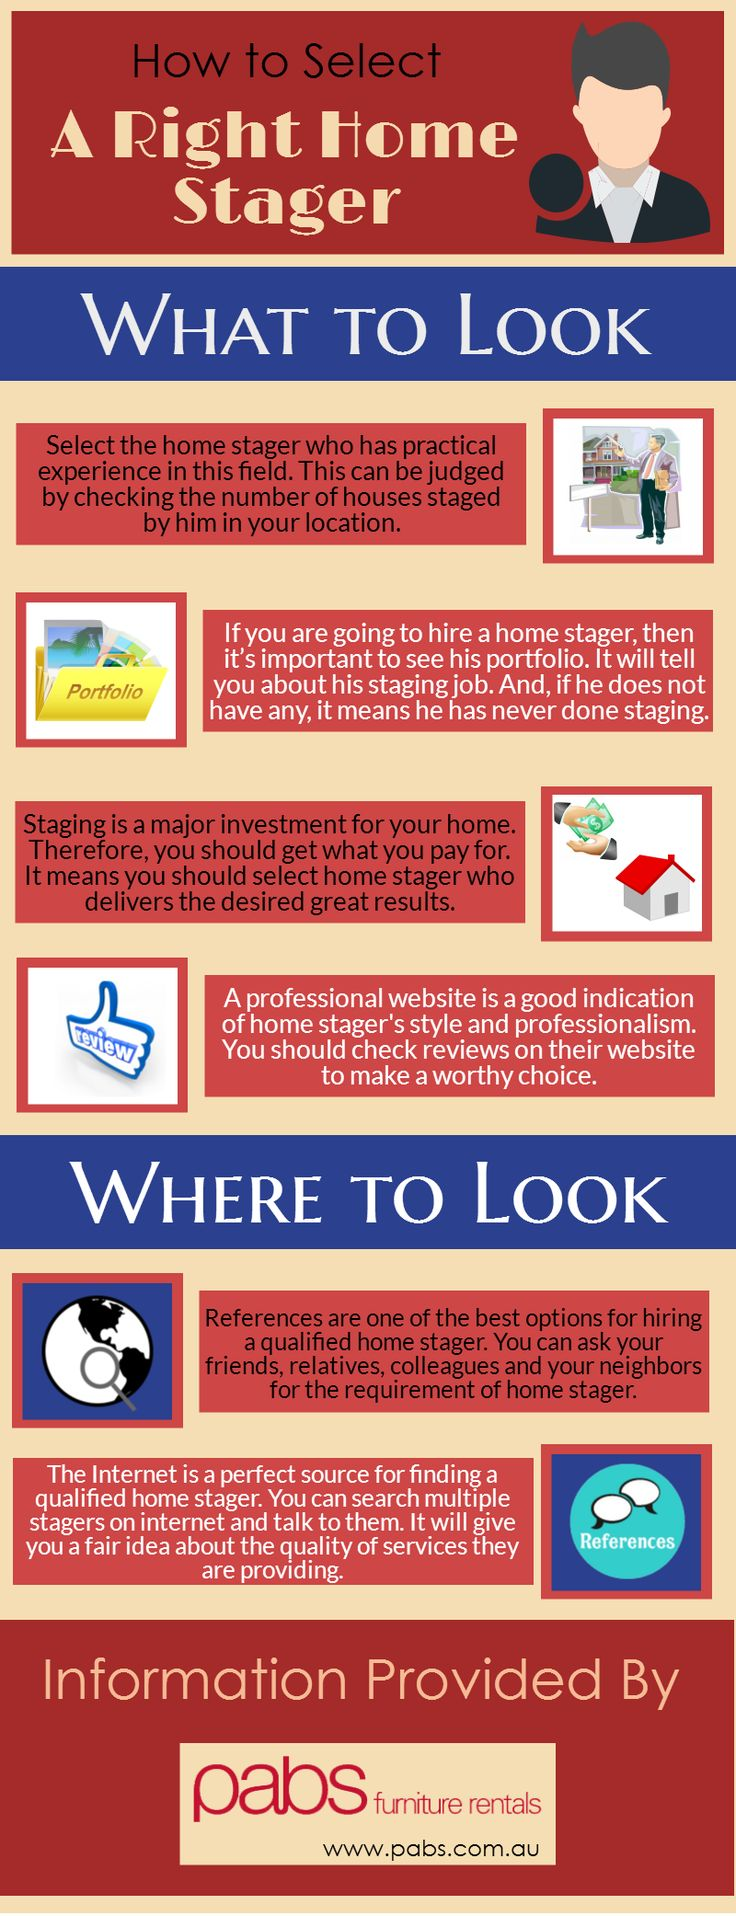 Home staging is important for making your home look beautiful. It helps you in selling the home at a higher price. But, for home staging, you should select a right home stager, having proper knowledge about home staging. With this, there are many things you should look at while you are going to select home stager.  If you want to know about these things, then go through this infographic. Here you will get to know about major points about it.